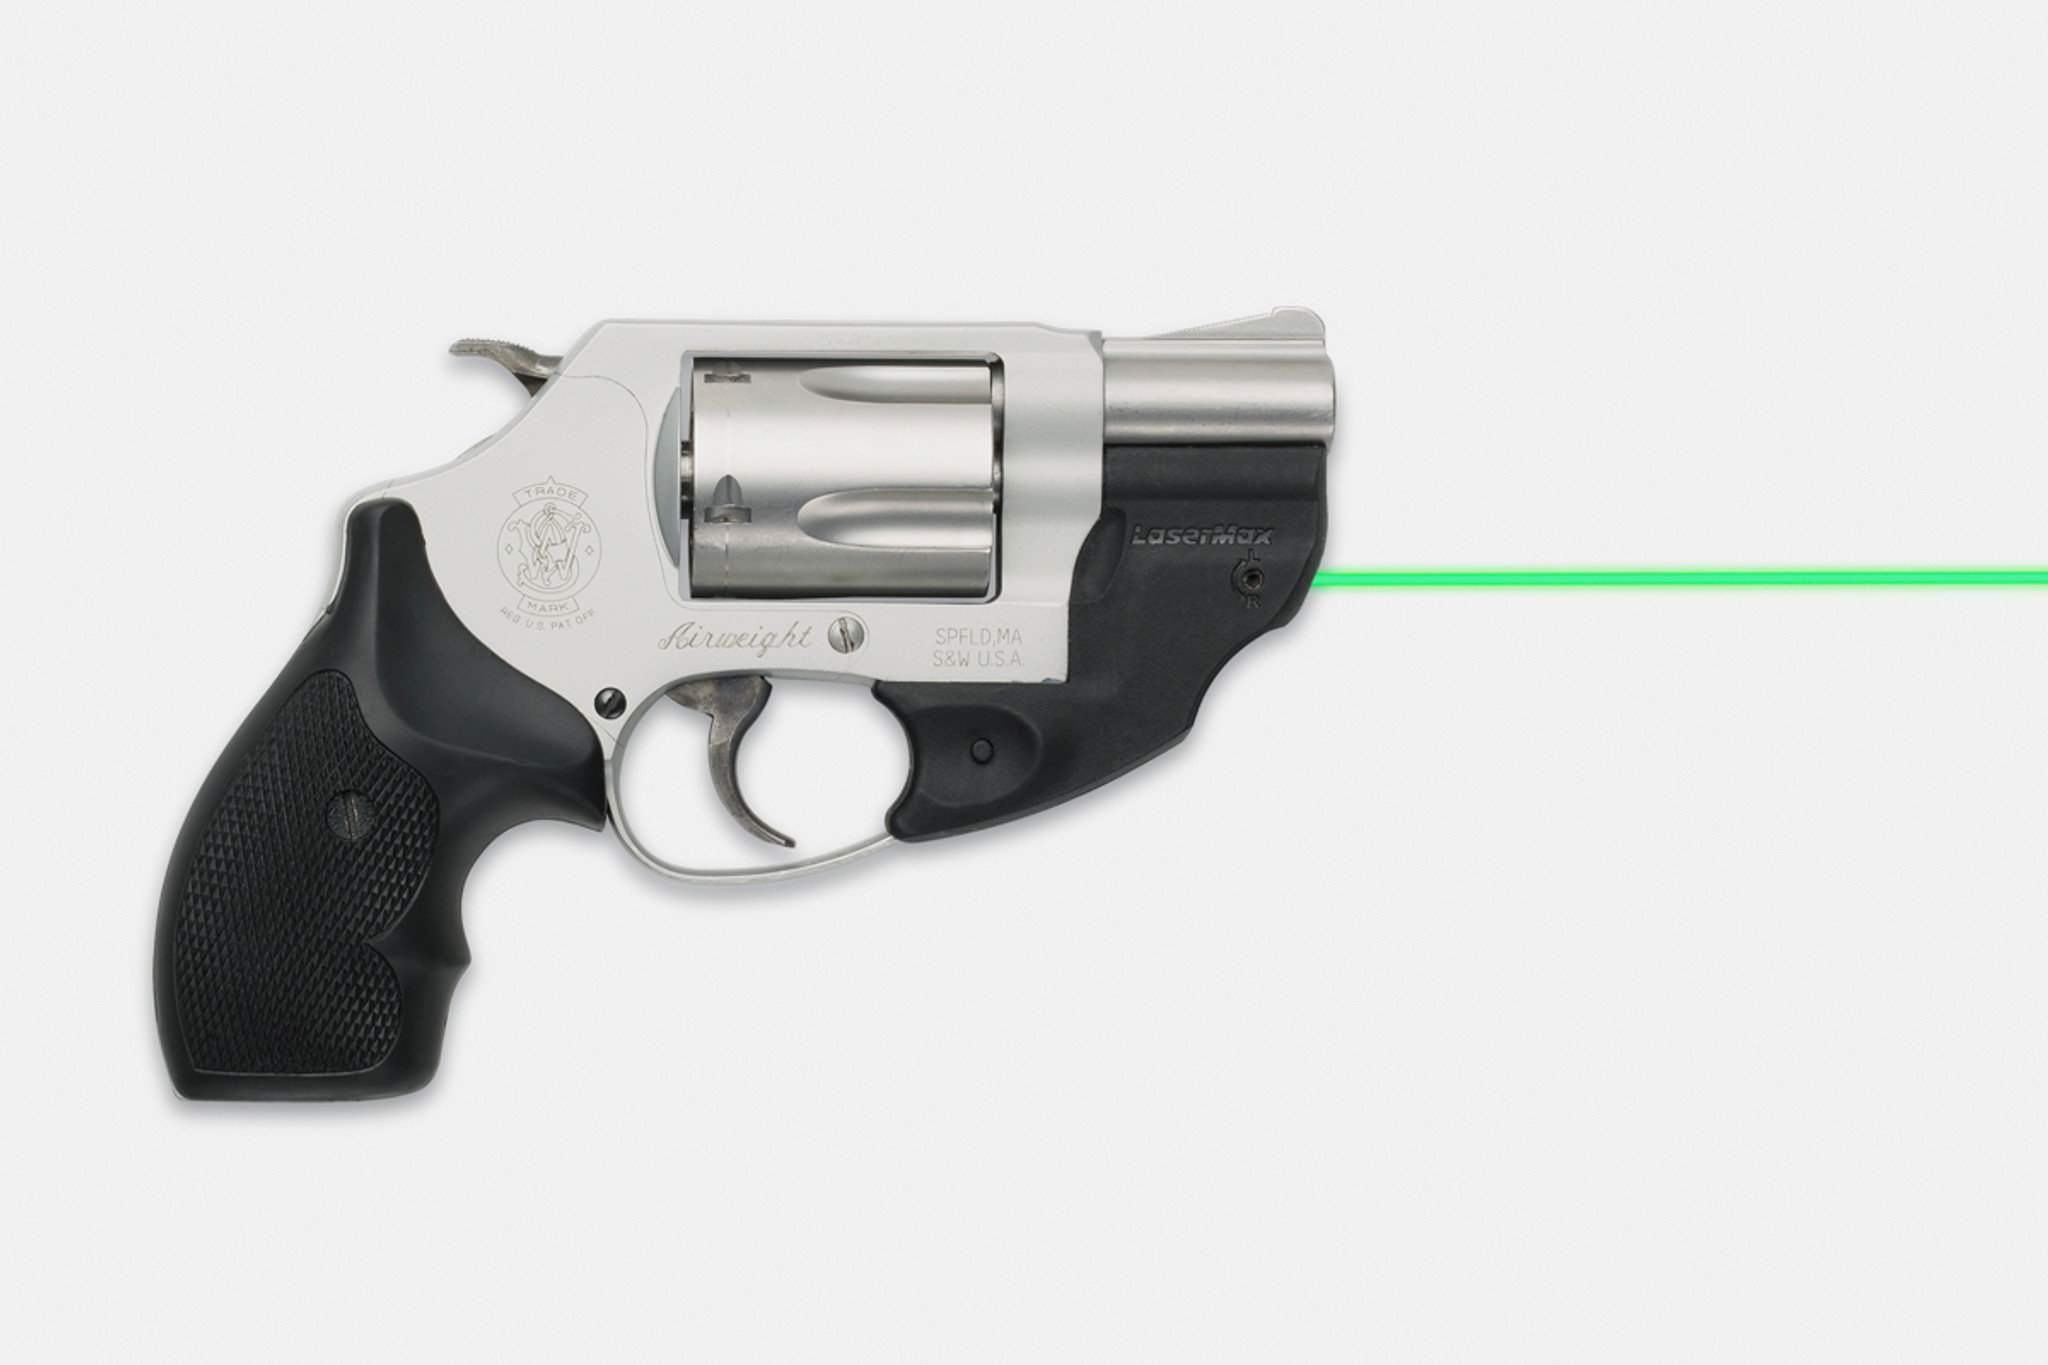 LaserMax Centerfire Green Laser Smith & Wesson J-Frame - Wise Tactical